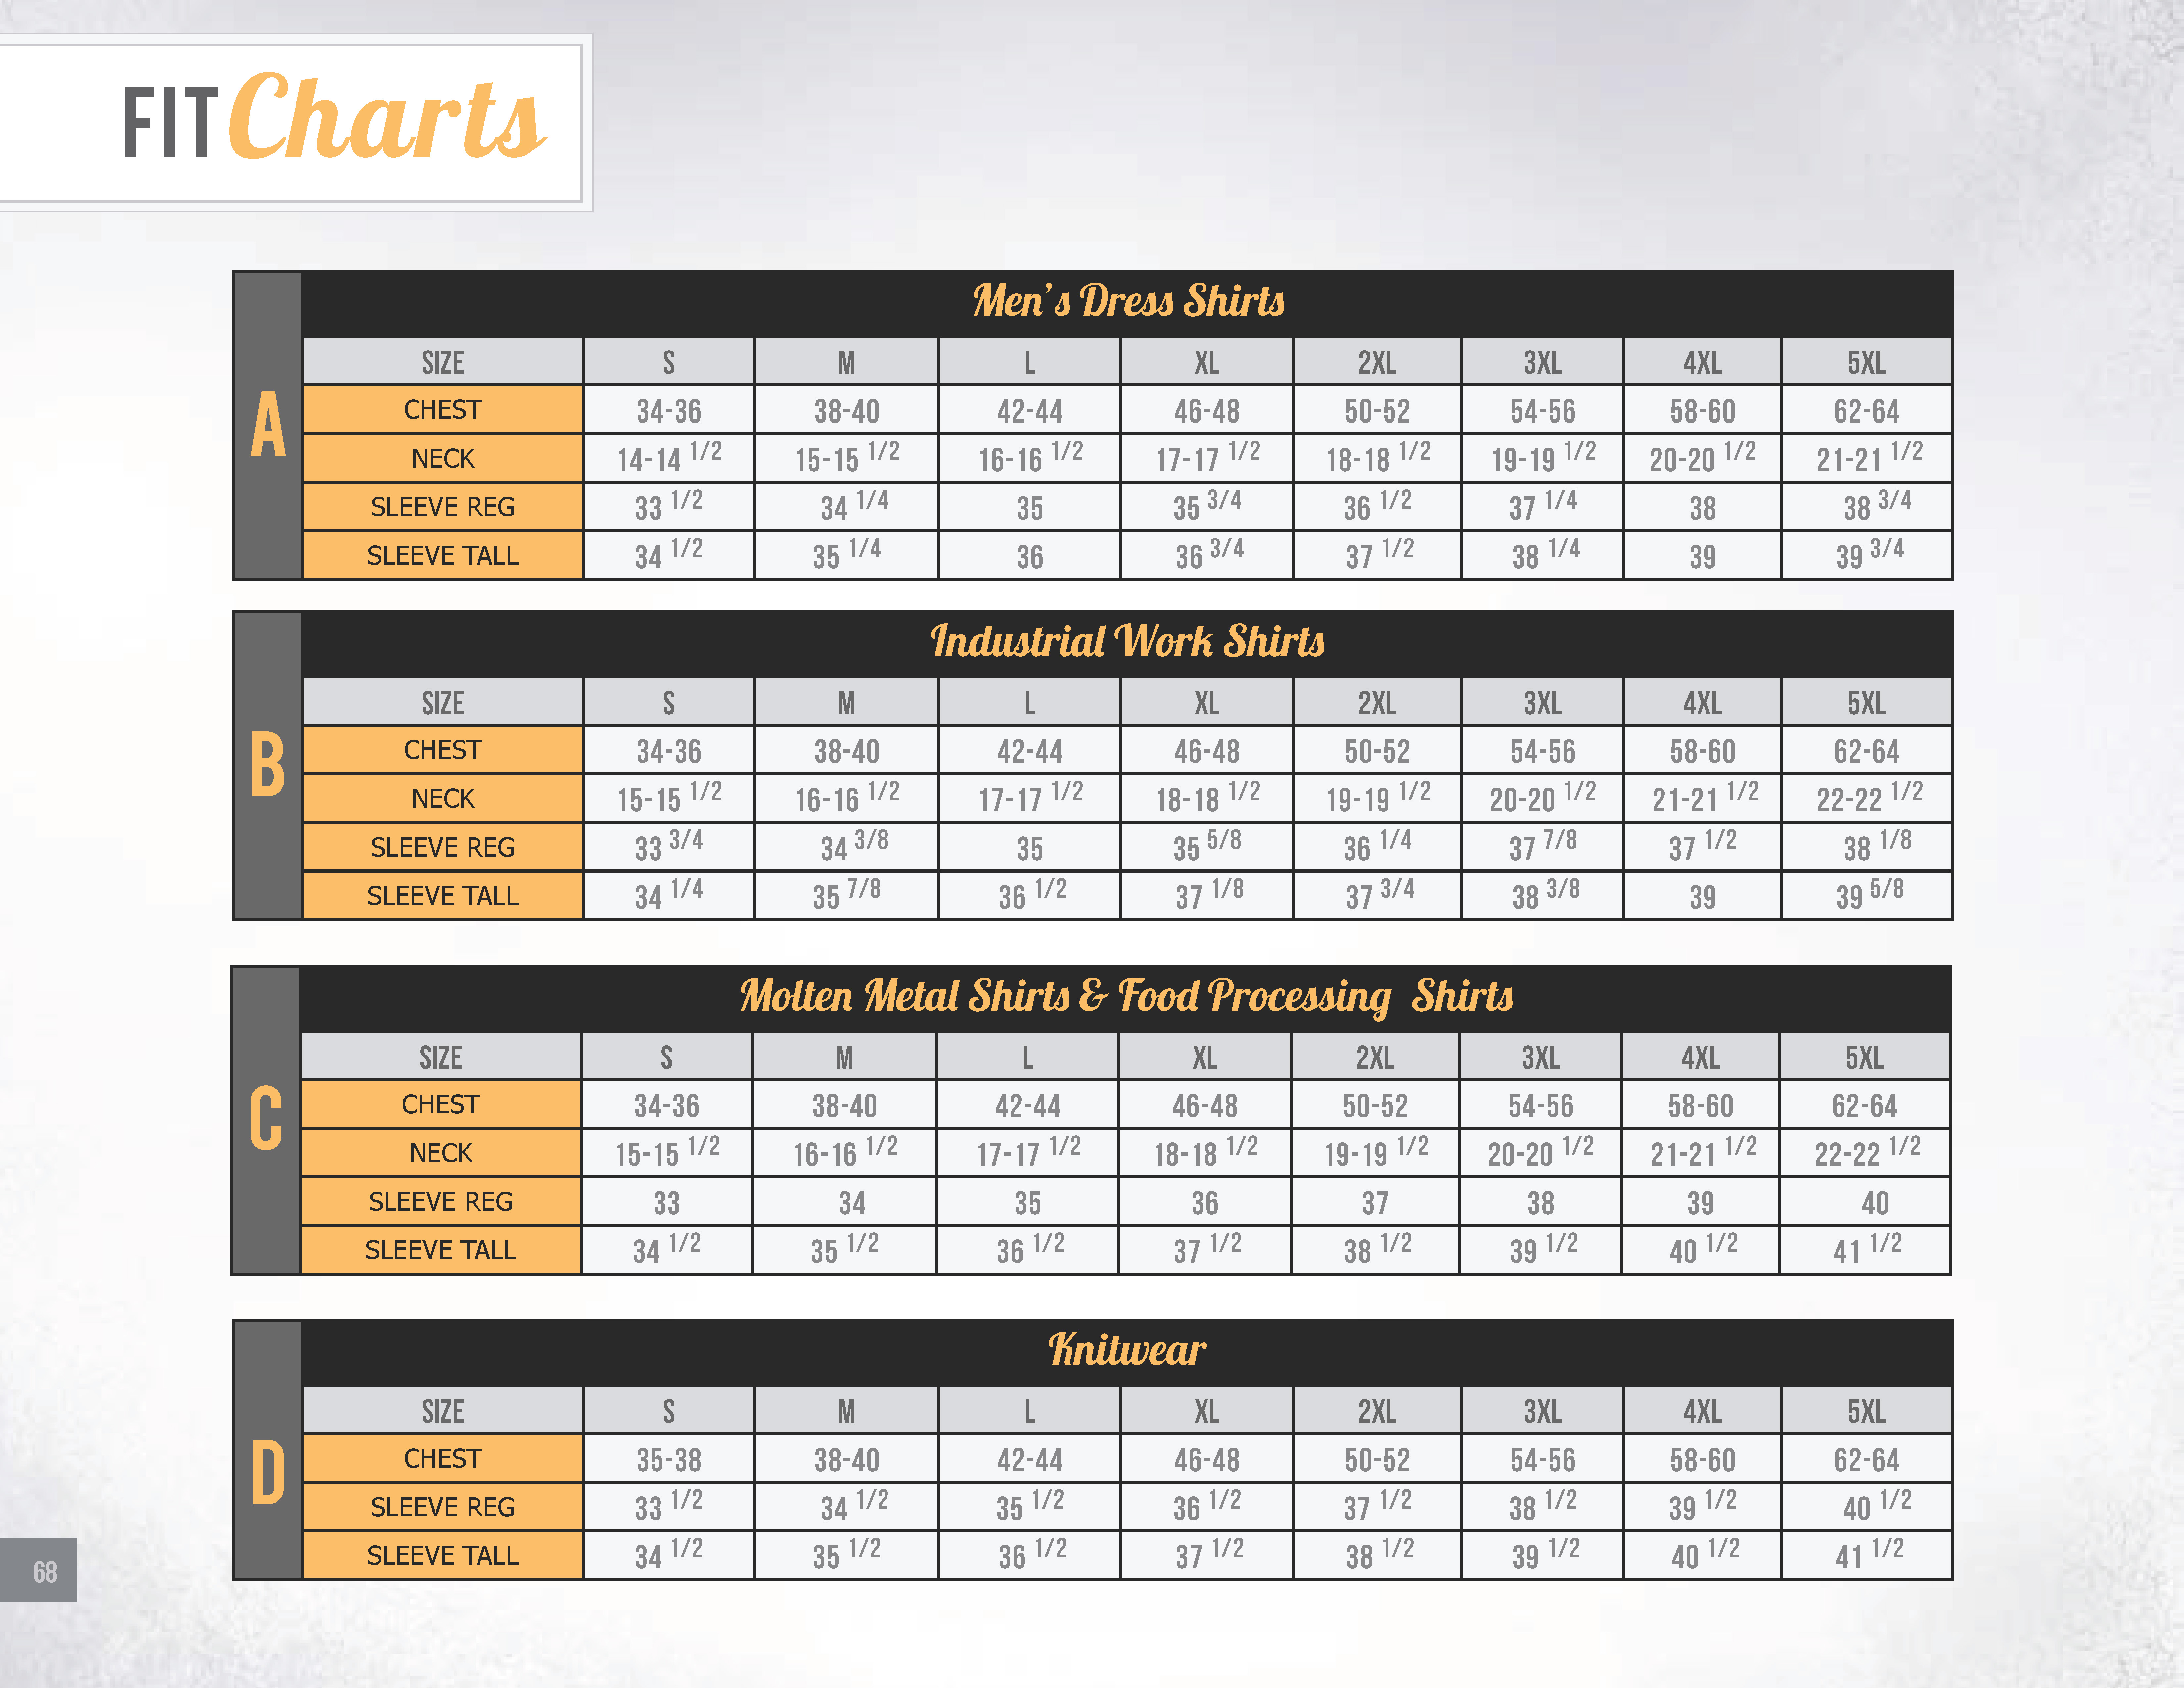 Sizing chart for BigBill products